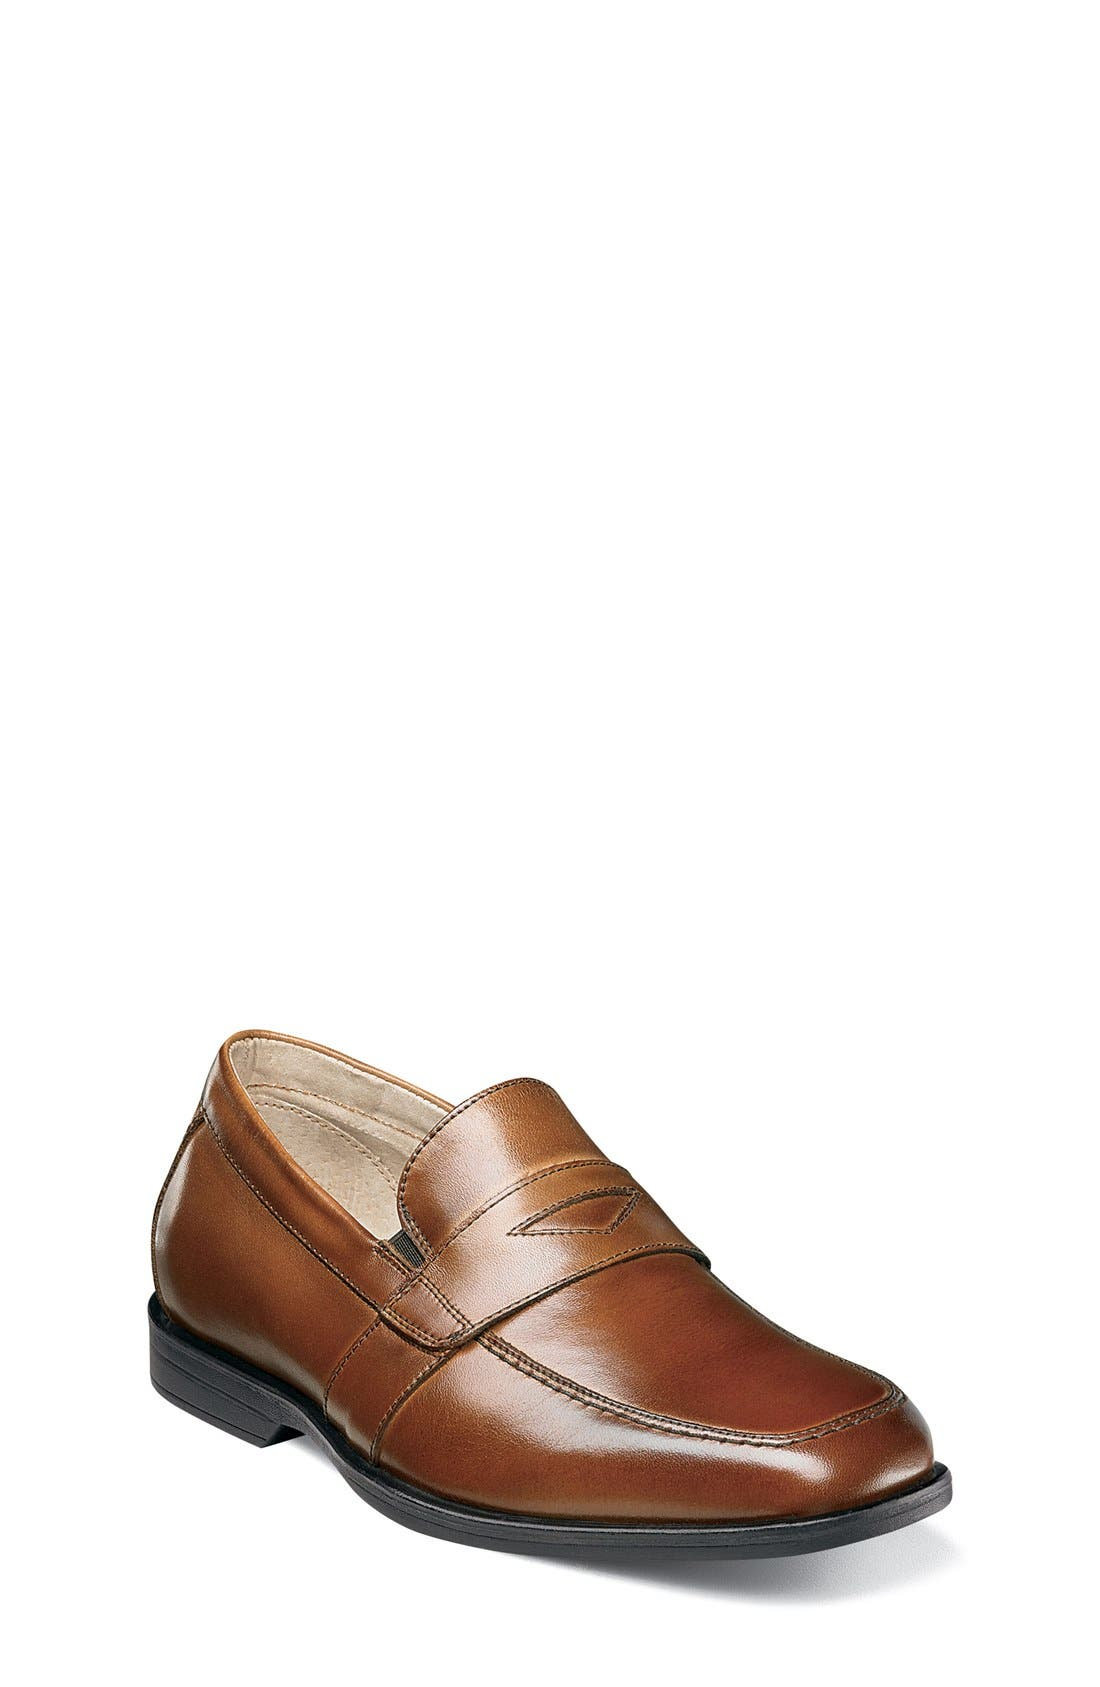 Florsheim 'Reveal' Penny Loafer (Toddler, Little Kid & Big Kid)